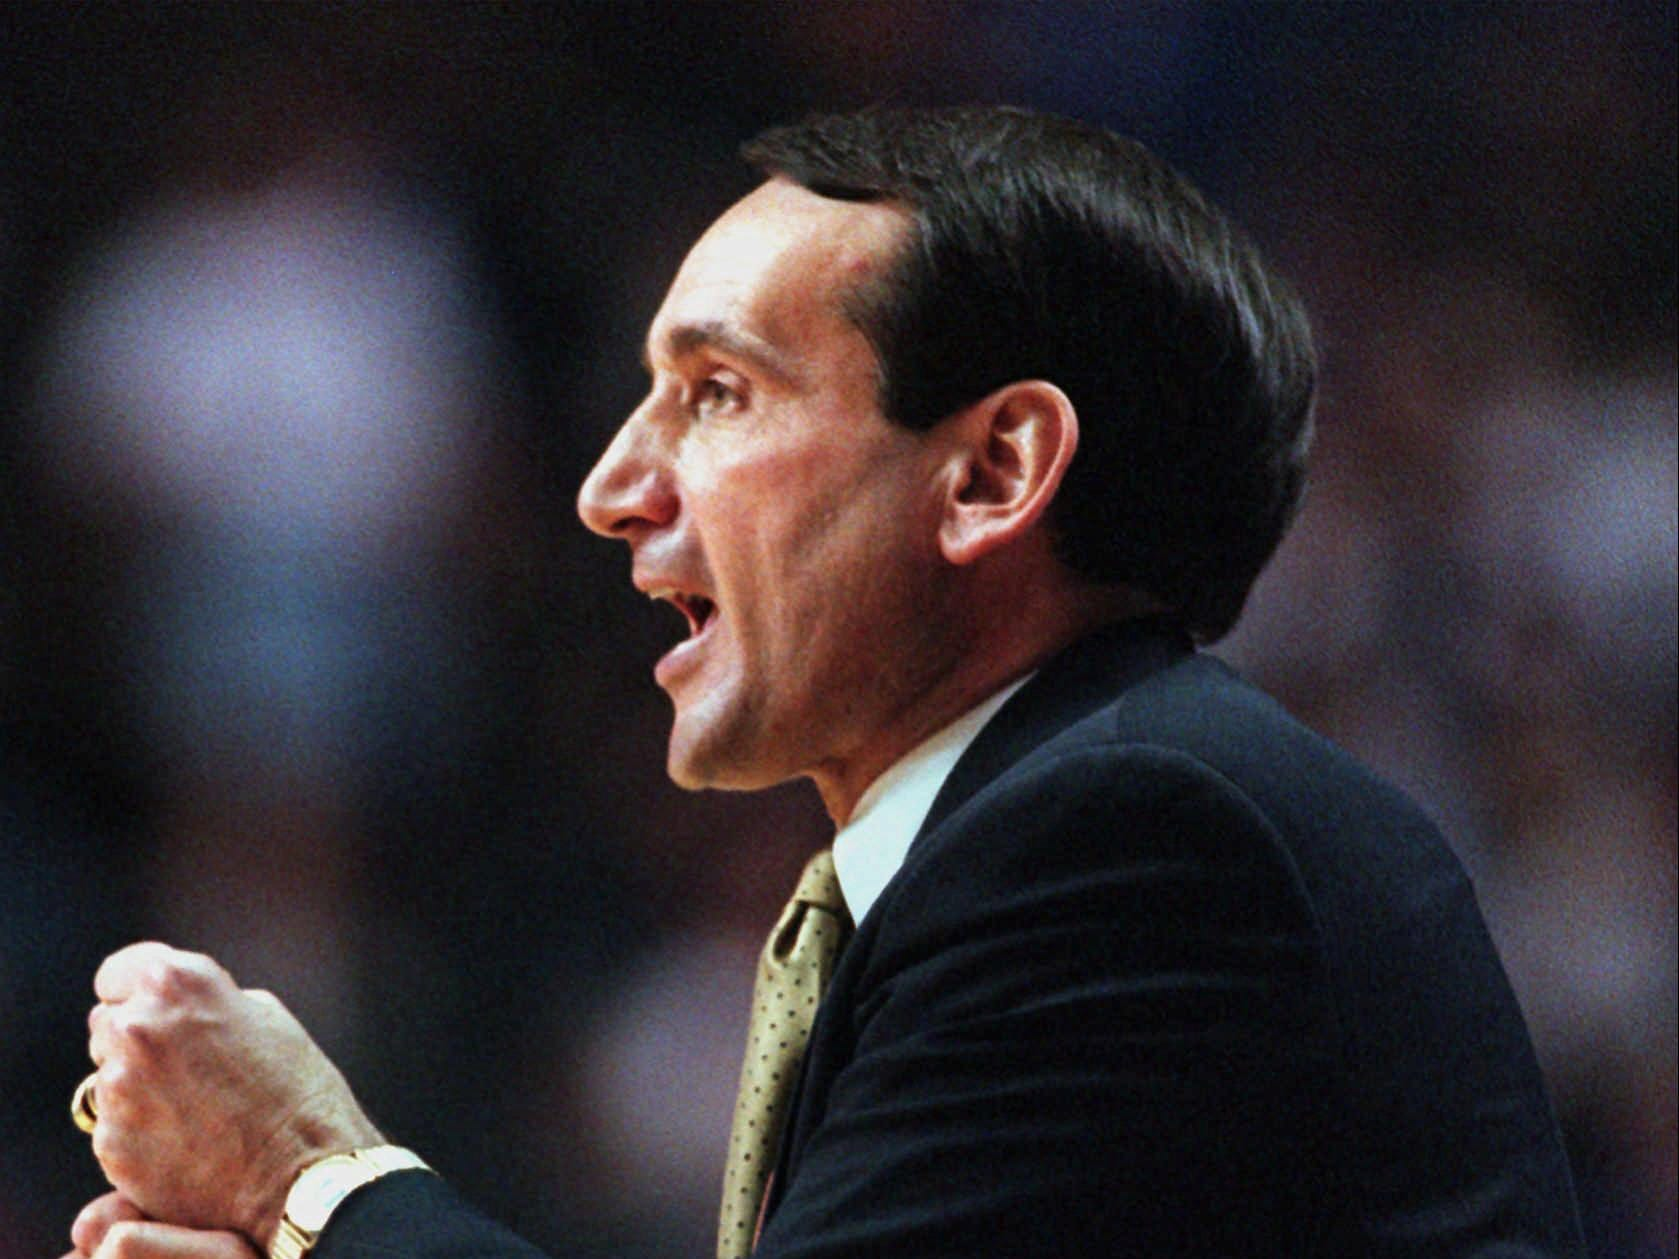 Duke coach Mike Krzyzewski gives signals to his players during their second round game of the NCAA South Regional Sunday, March 15, 1998 in Lexington, Ky. Duke defeated Oklahoma State 79-73.